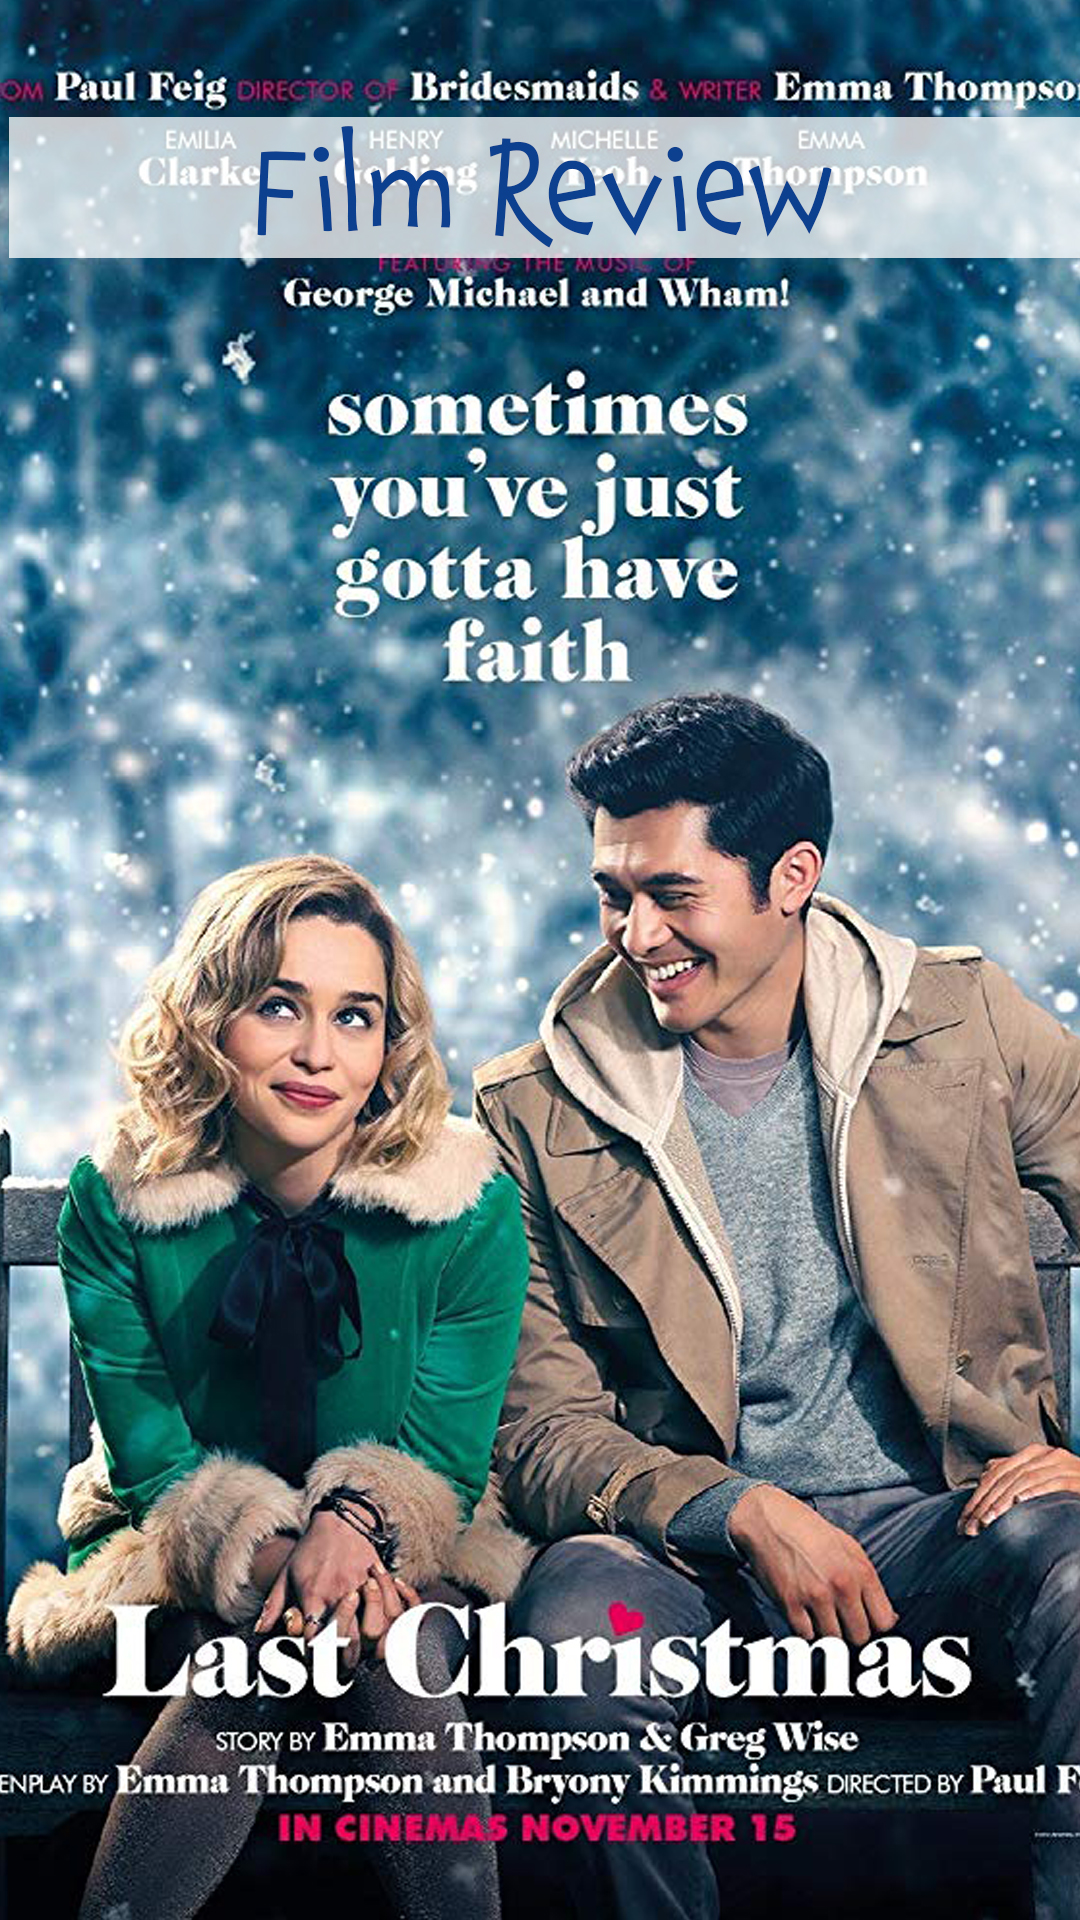 Last Christmas Film Review